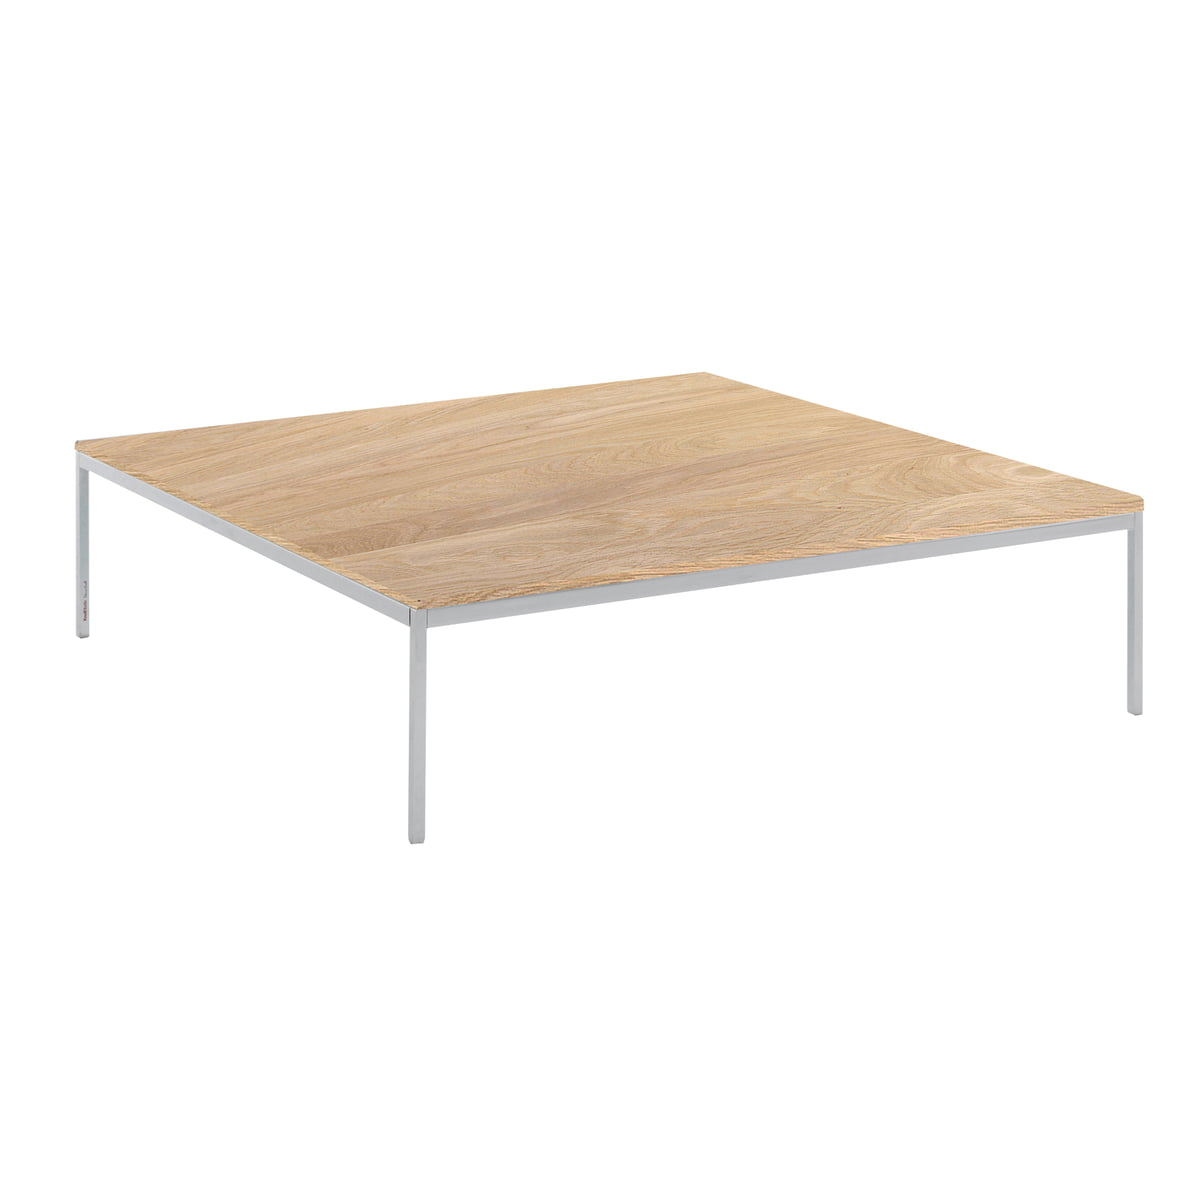 Knoll Home Design Shop: Knoll Florence Couch Table In The Home Design Shop